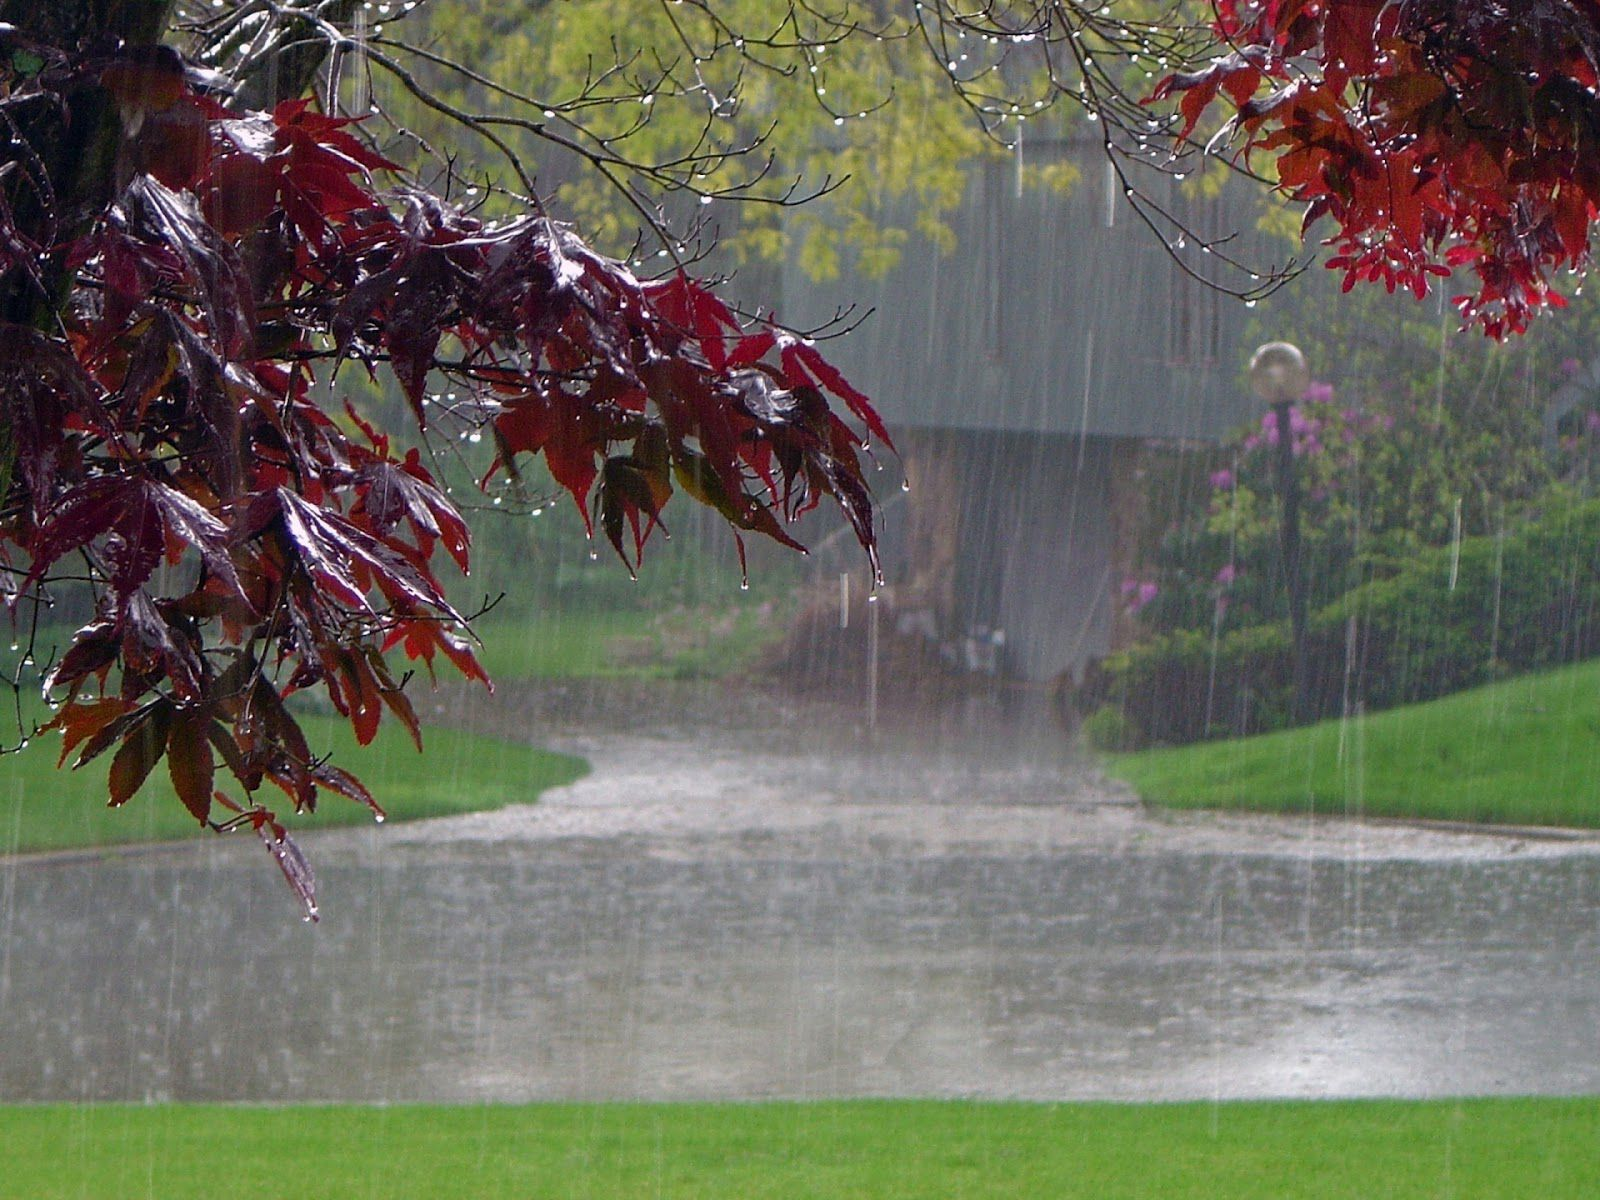 Rainy Nature Wallpapers Rain Wallpapers Nature Wallpaper Sound Of Rain